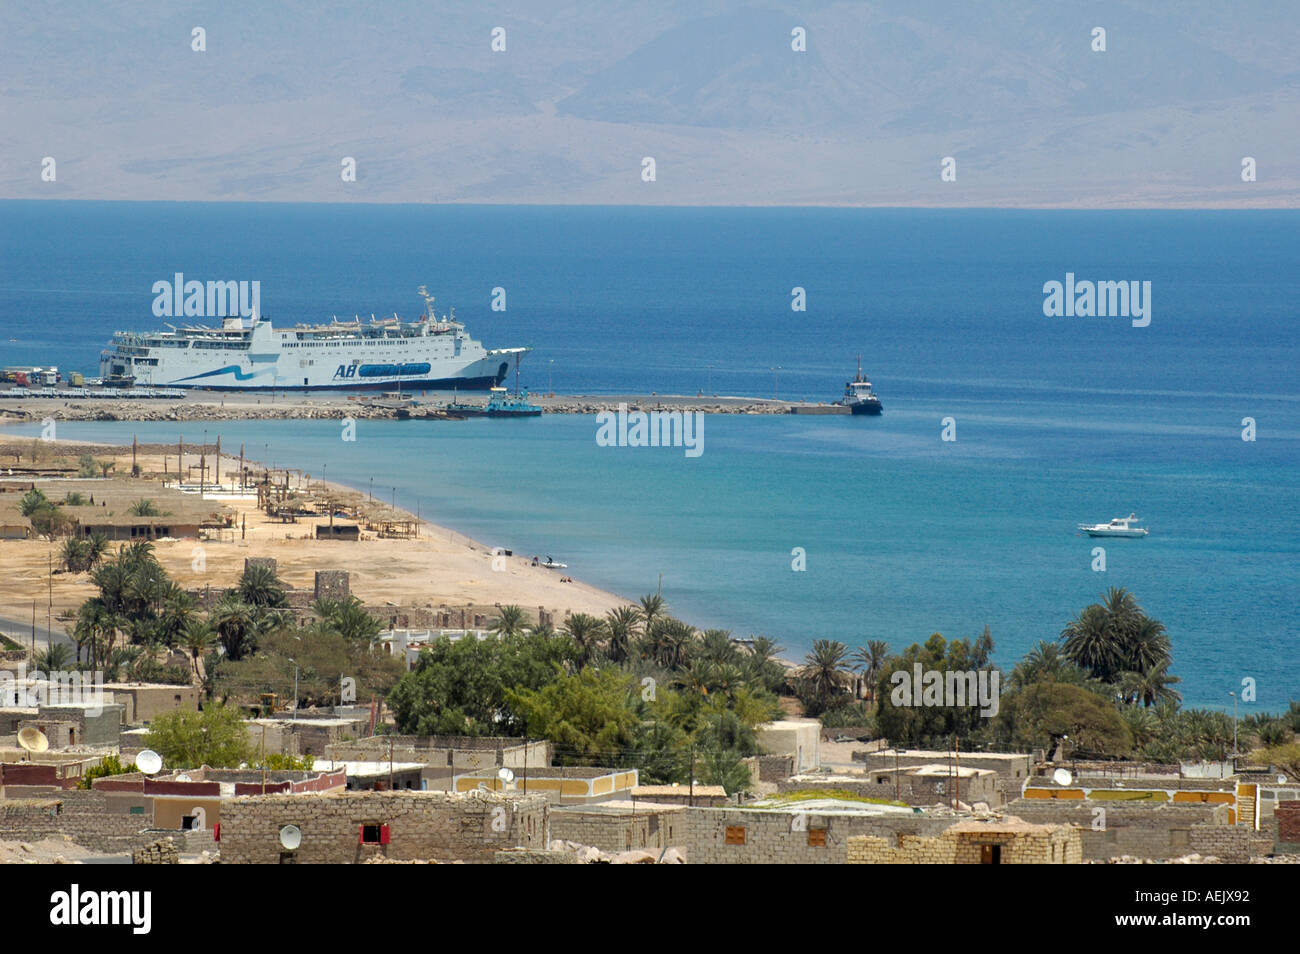 Ferry boat from Aqaba operated by AB (Arab Bridge) Maritime anchored in the bay of Nuweiba or Nueiba a coastal town in Sinai Peninsula, Egypt - Stock Image